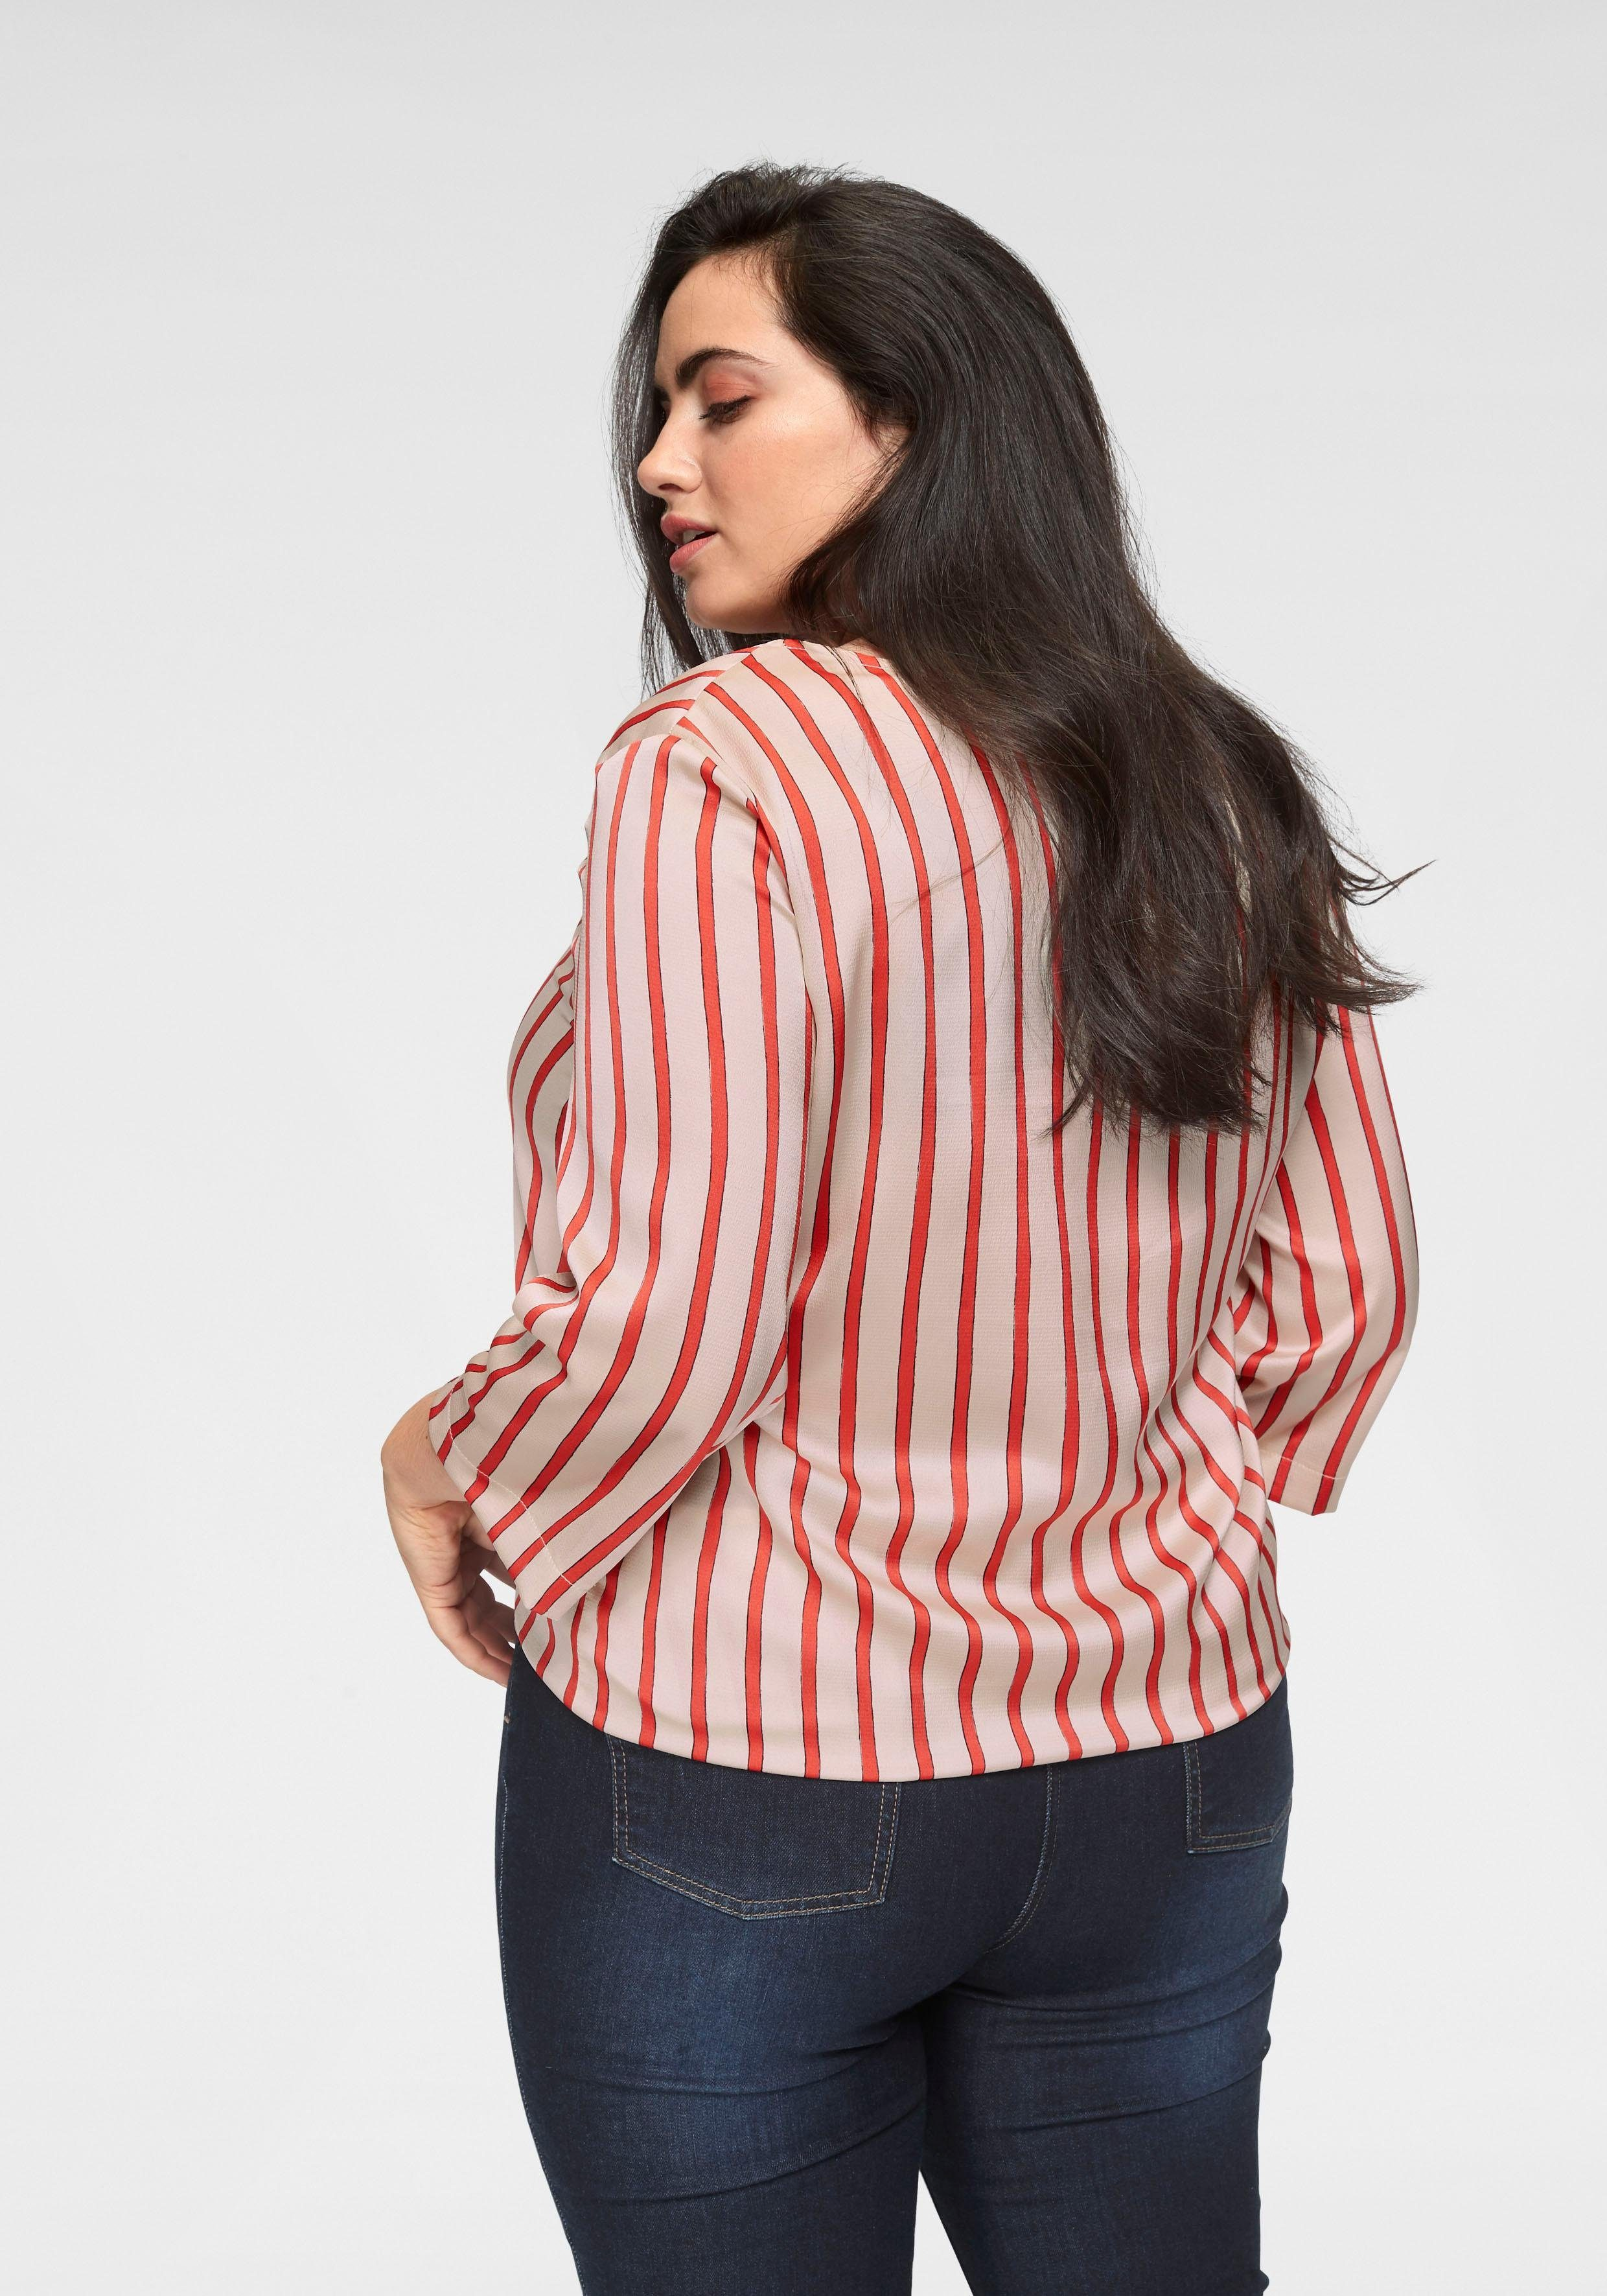 Collection Shirtbluse Saum Gmk Curvy Knoten Am Mit 2DHIEW9Y